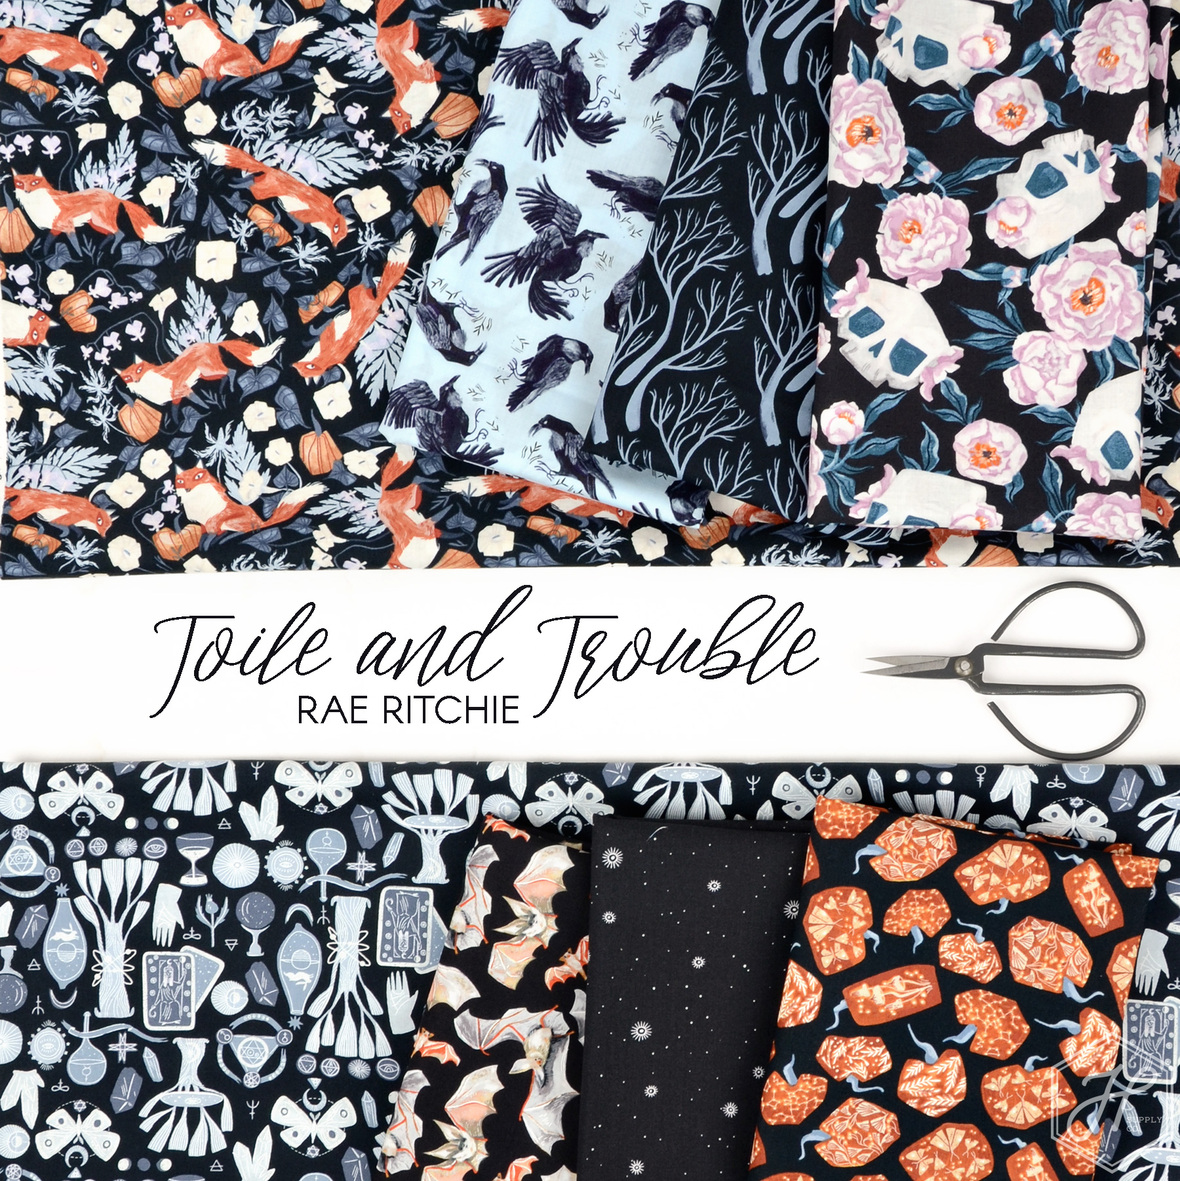 Toile-and-Trouble-Rae-Ritchie-for-Dear-Stella-fabric-at-Hawthorne-Supply-Co